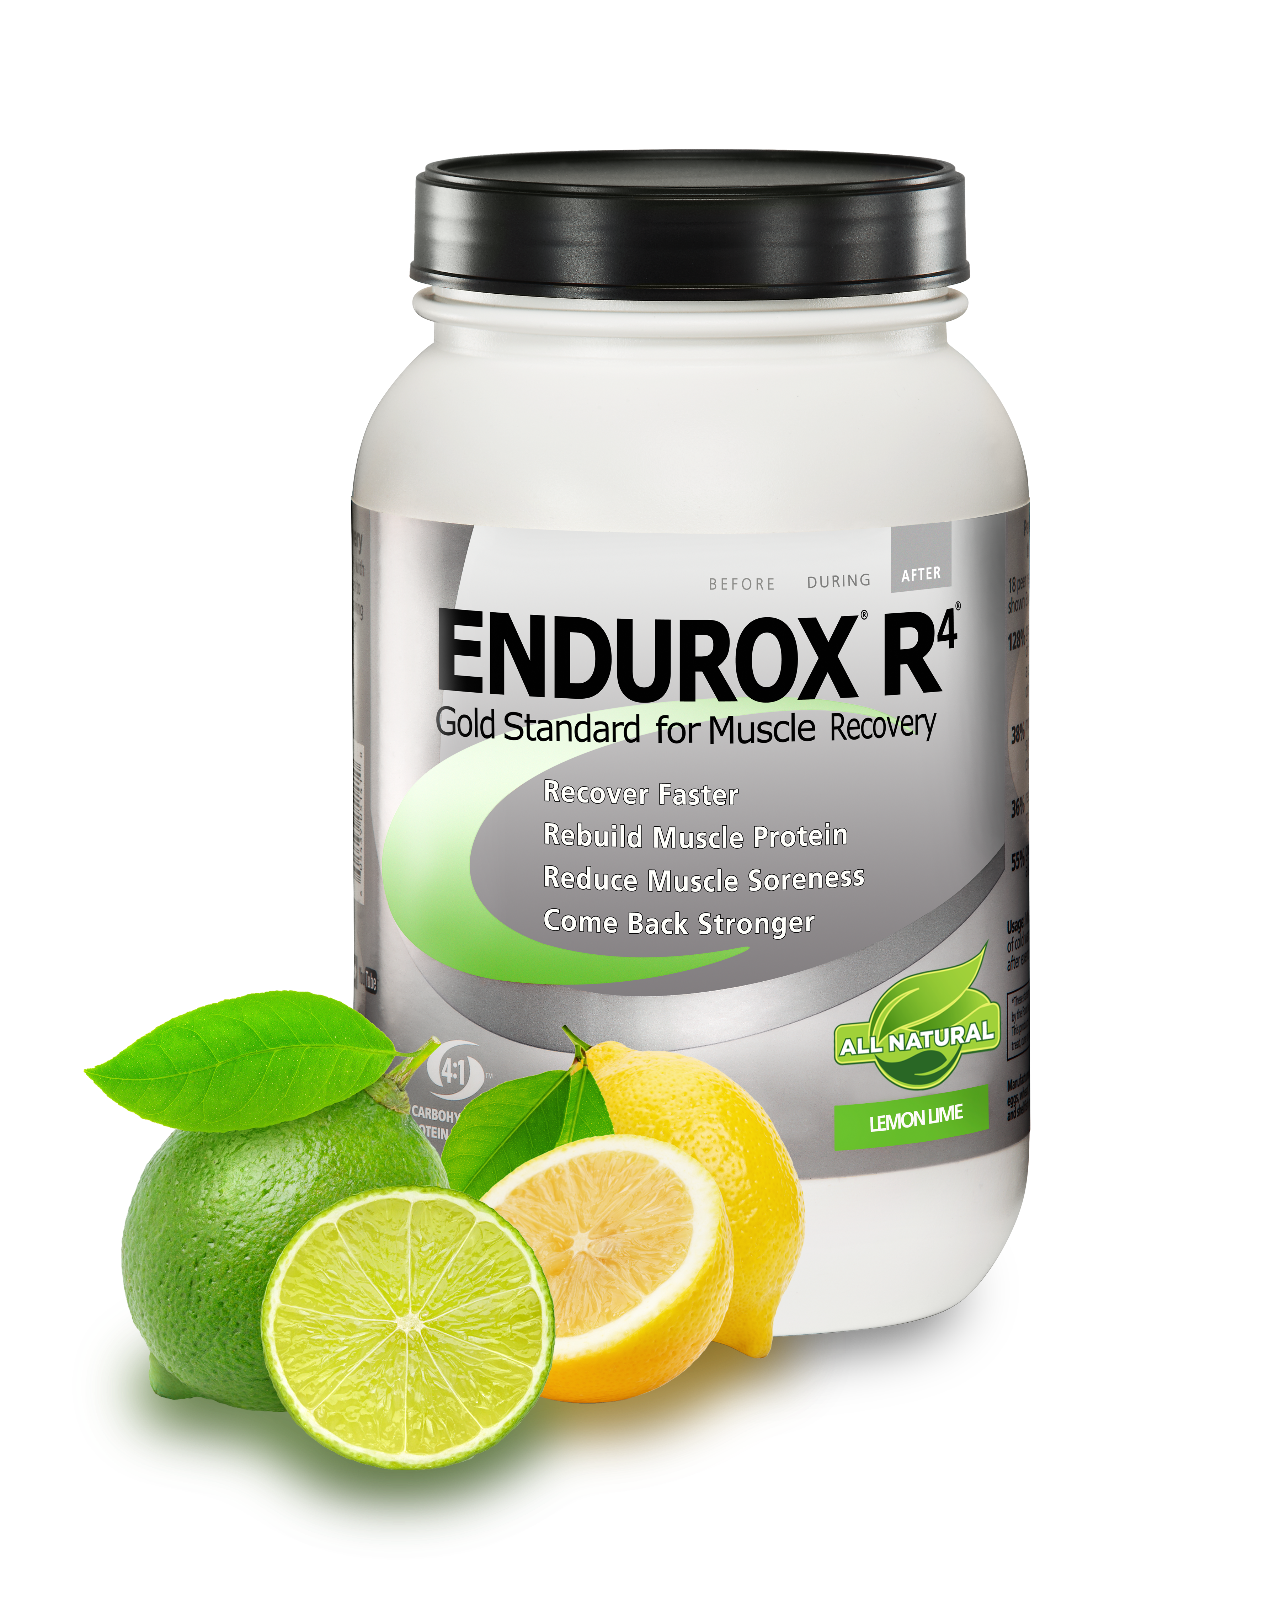 Endurox 28 Servings (4.56lbs) by Pacific Health Labs - ALL FREE FLAVORS - FREE ALL S/H b1c64f